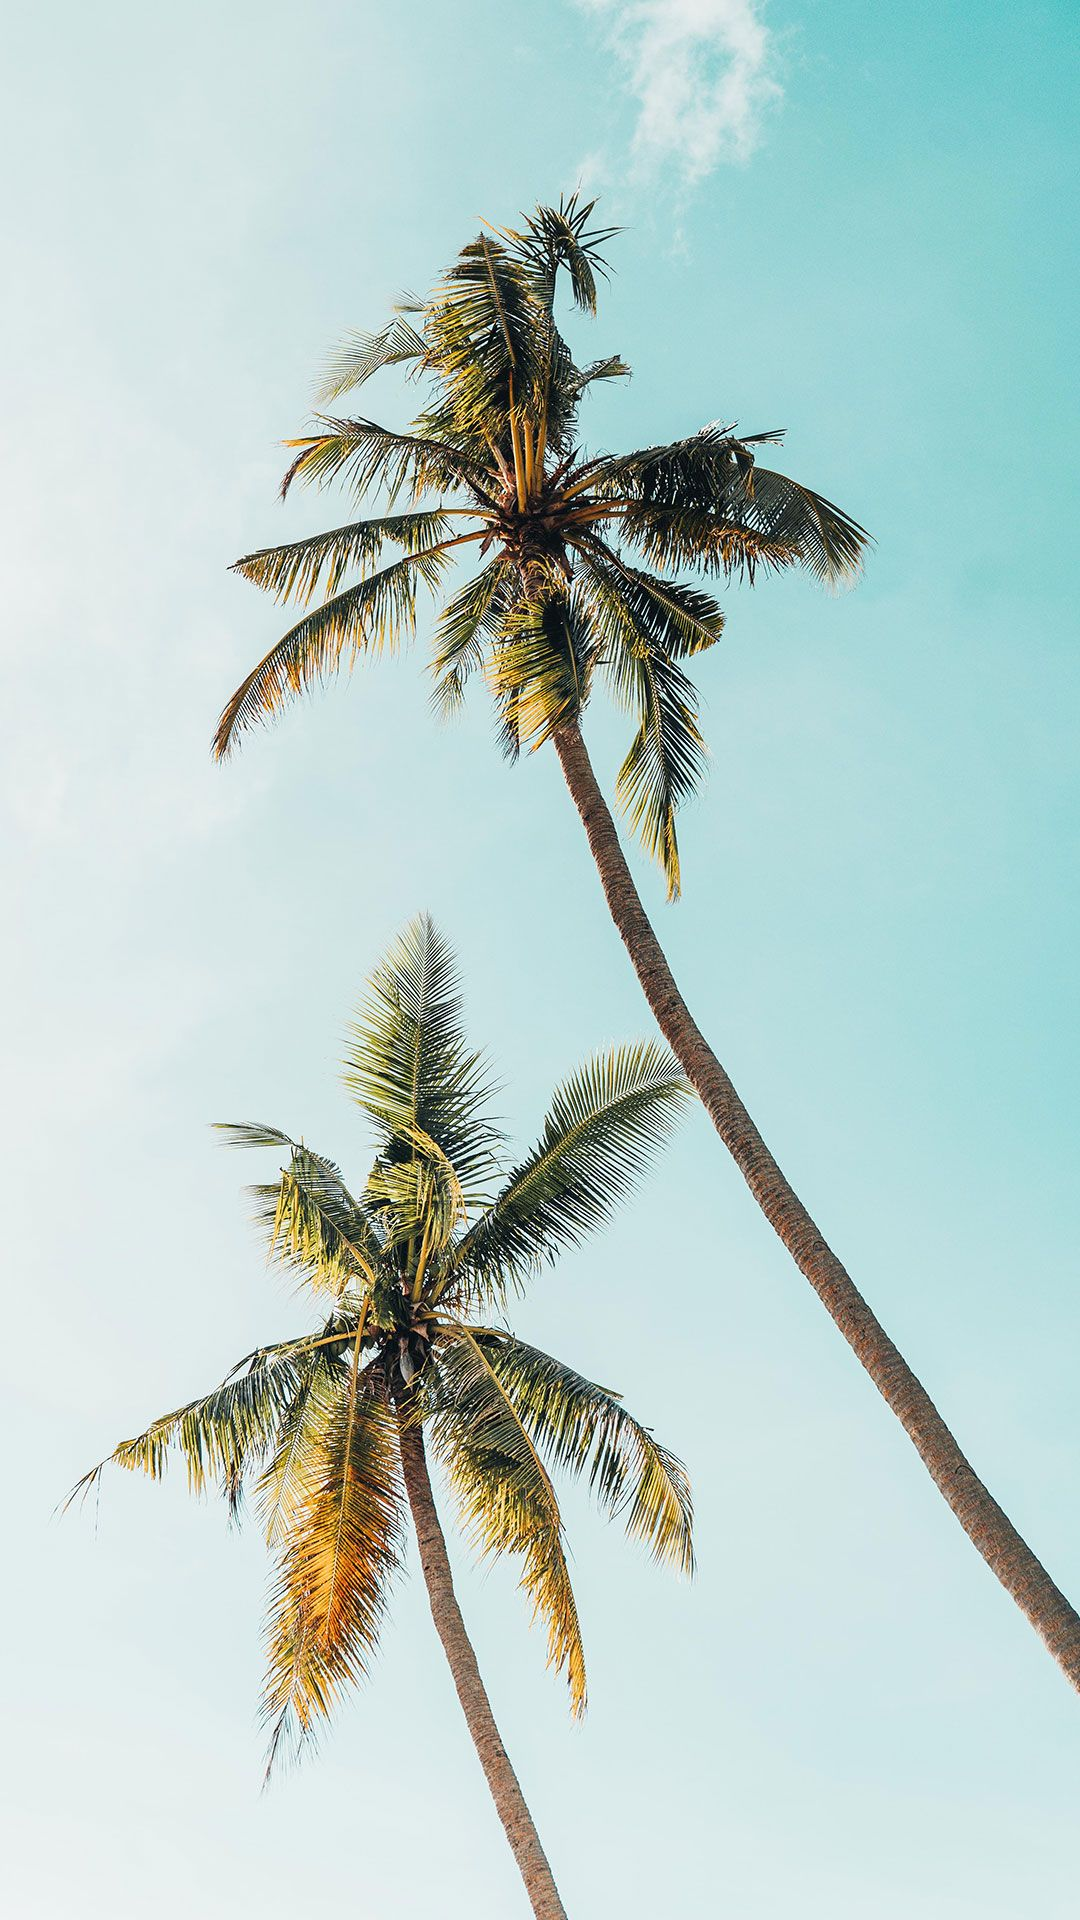 116 Free Beach Wallpapers For Your Phone Desktop Palm Tree Iphone Wallpaper Tree Wallpaper Iphone Palm Trees Wallpaper